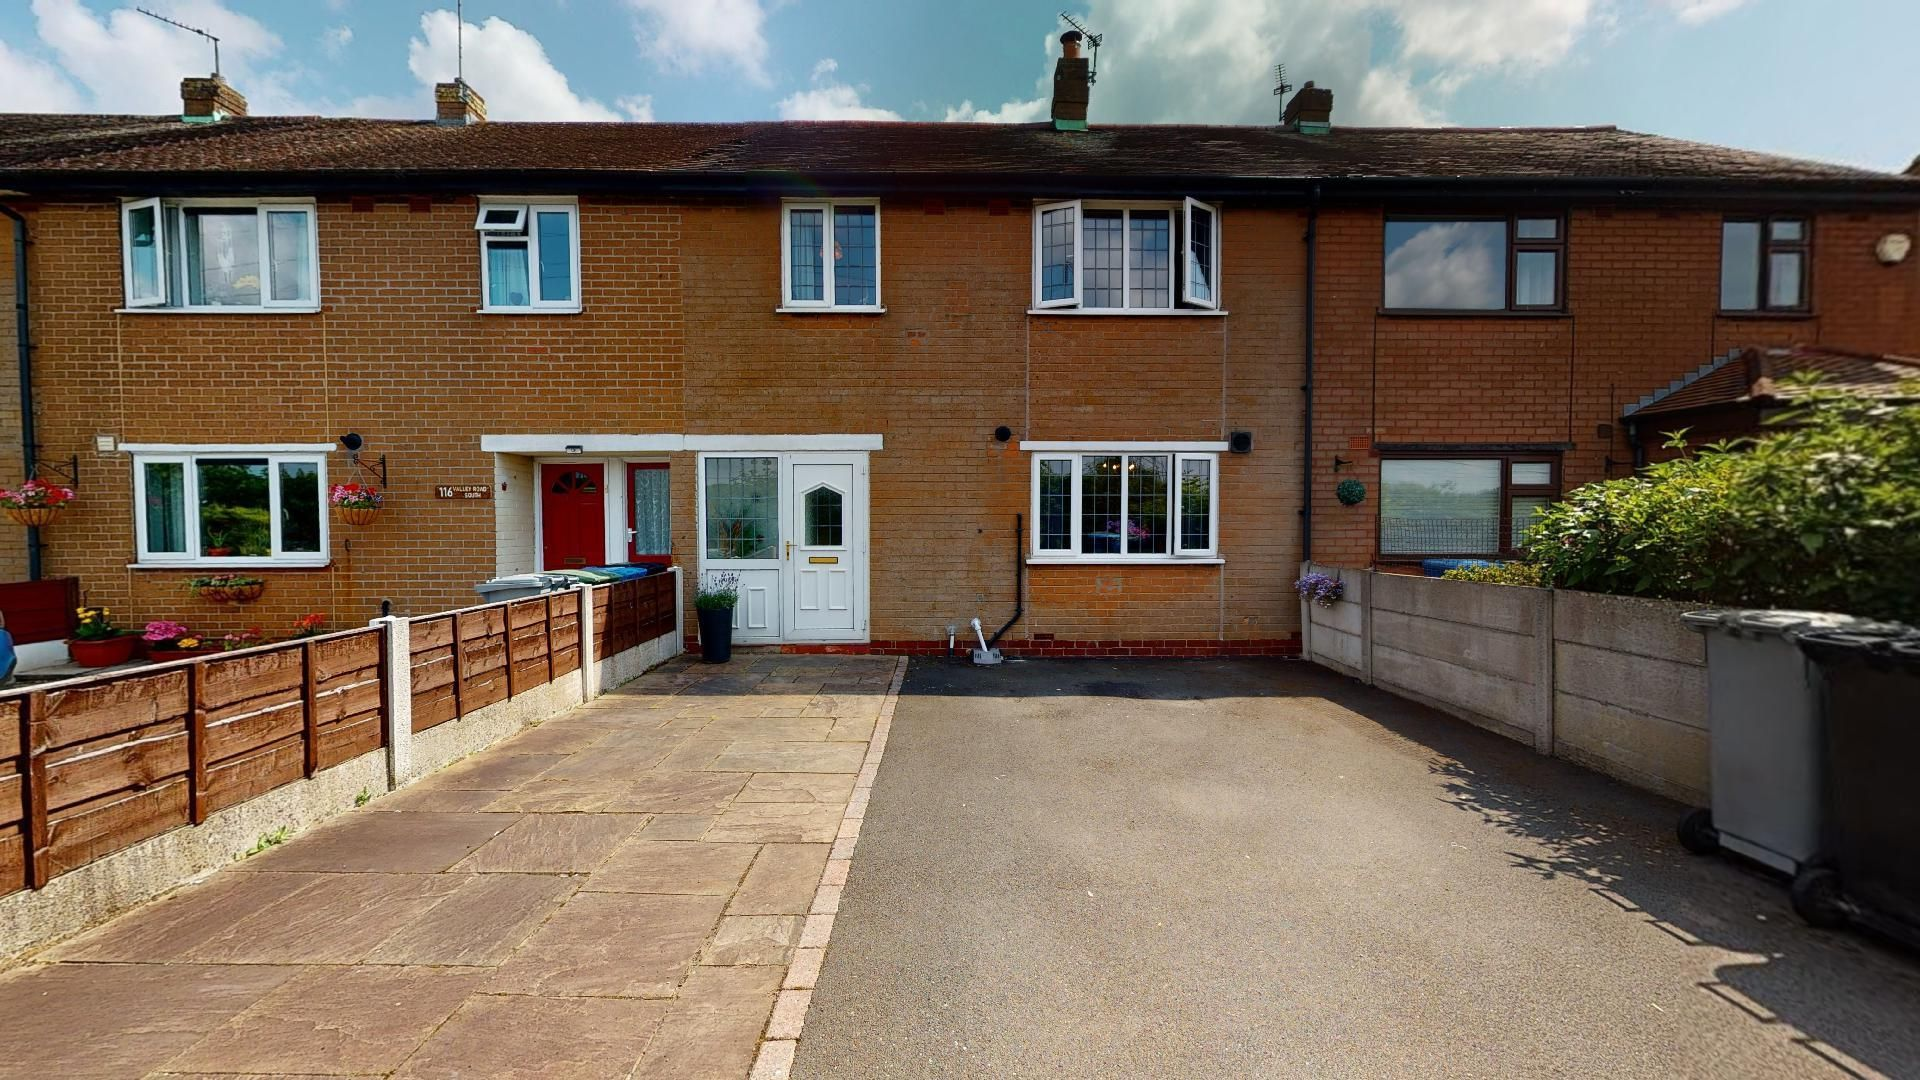 Property photo 1 of 11. Valley-Road-South-Flixton-07262021_214540.Jpg